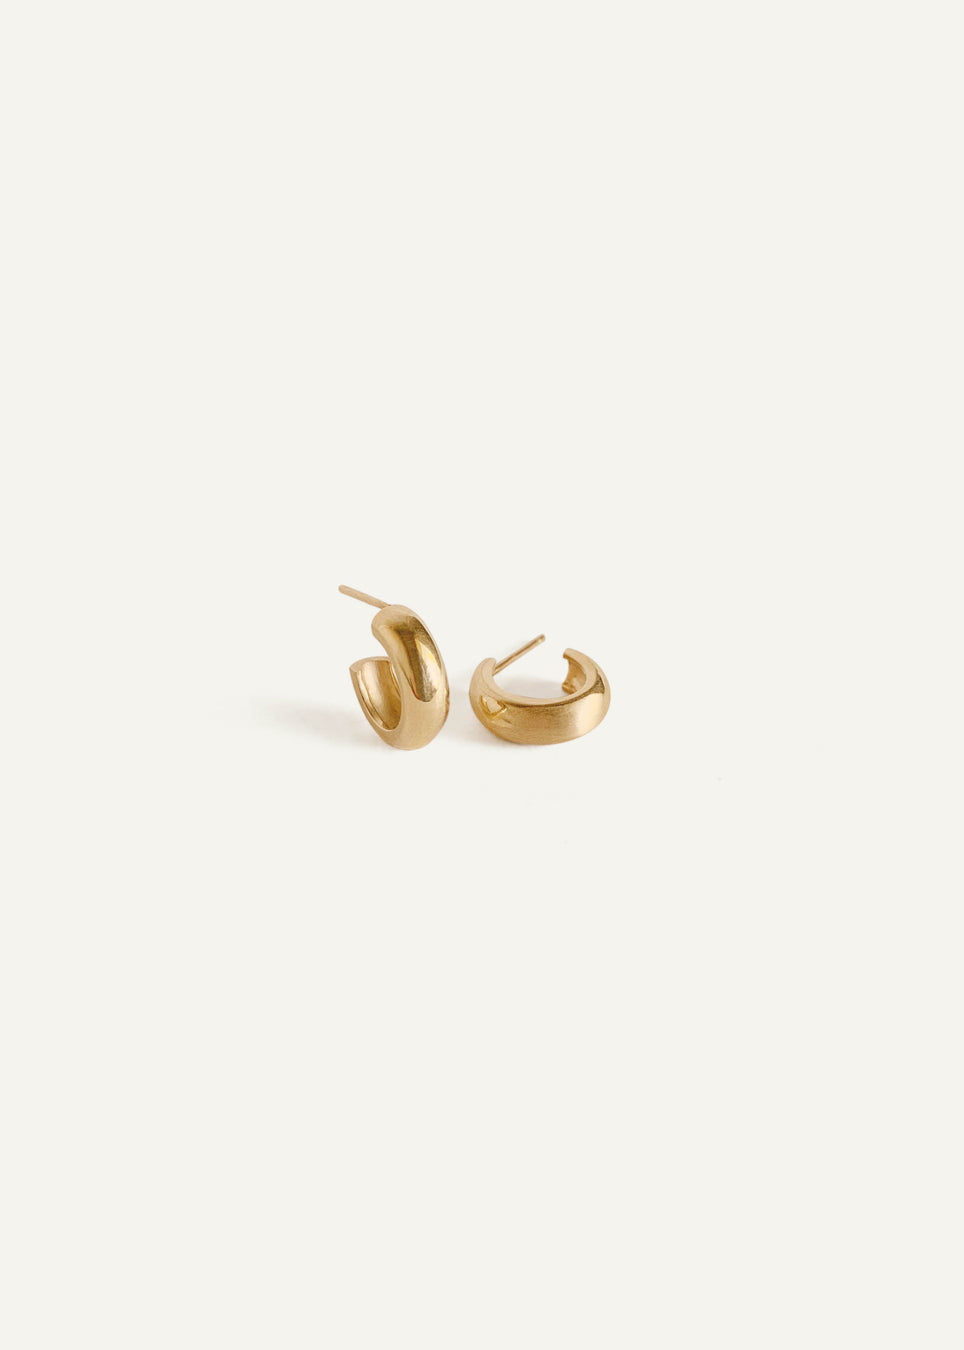 14k Round Hoop Earrings